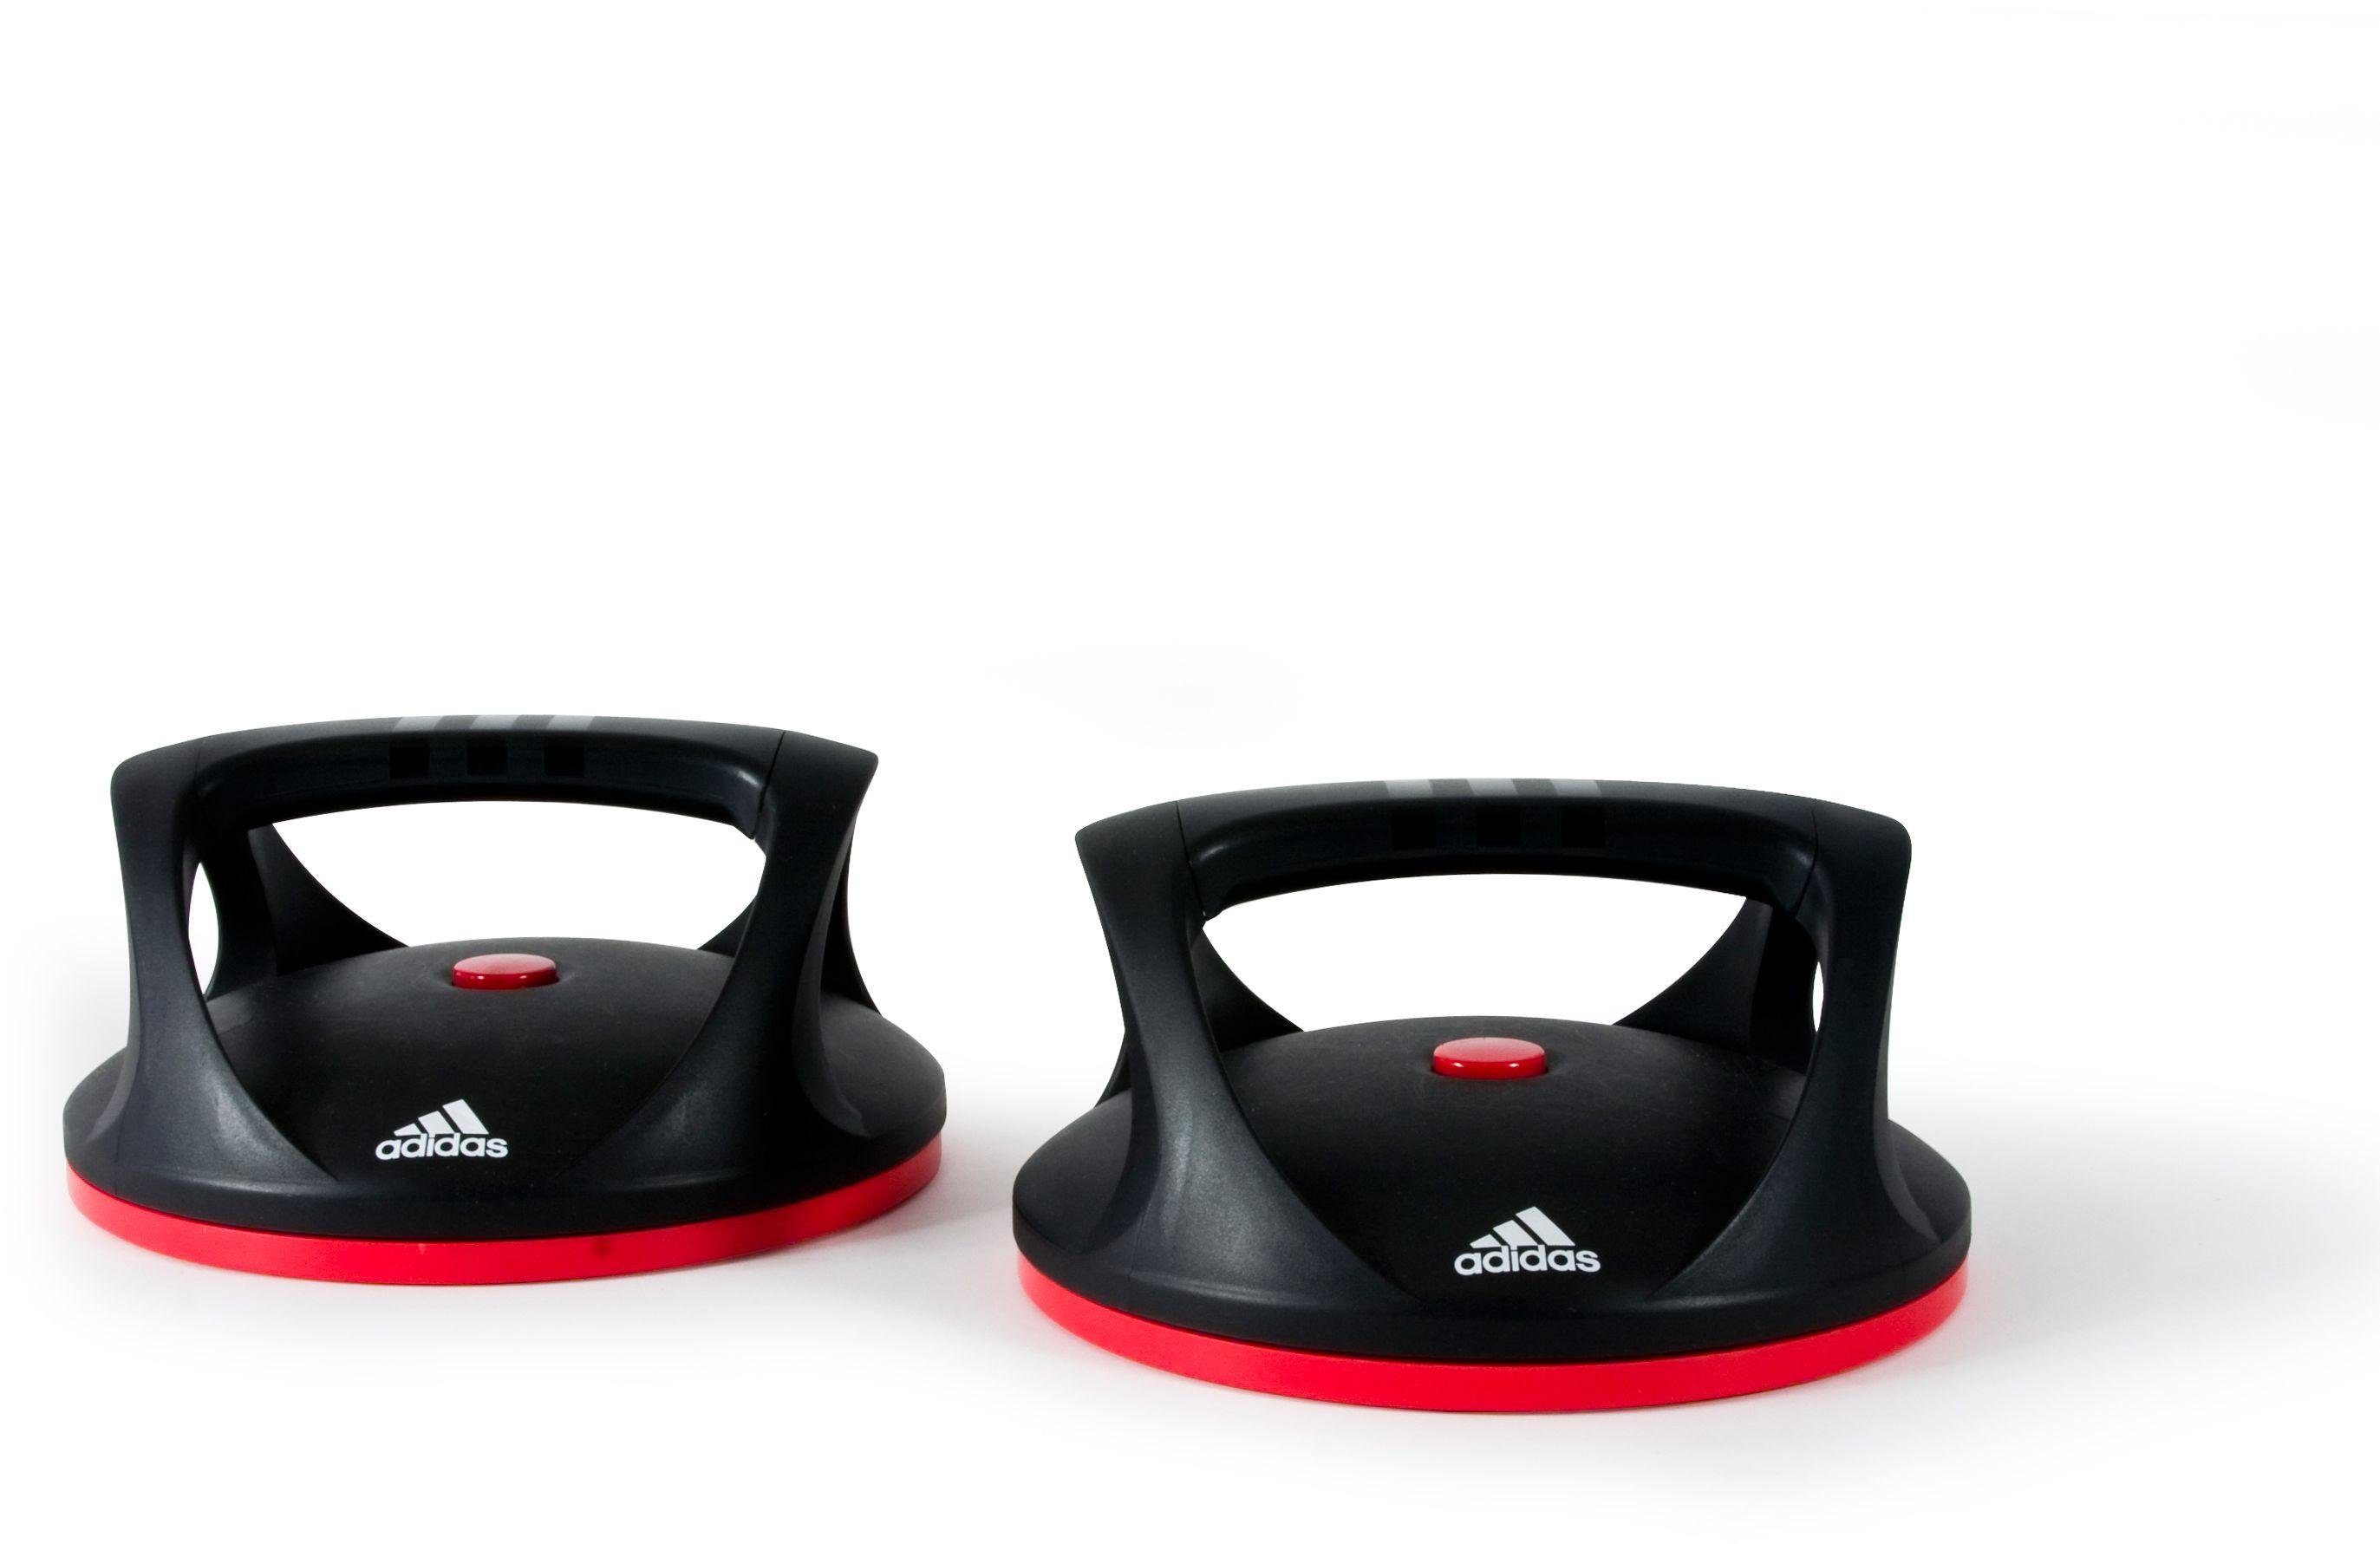 Adidas - Swivel Push Up Bars